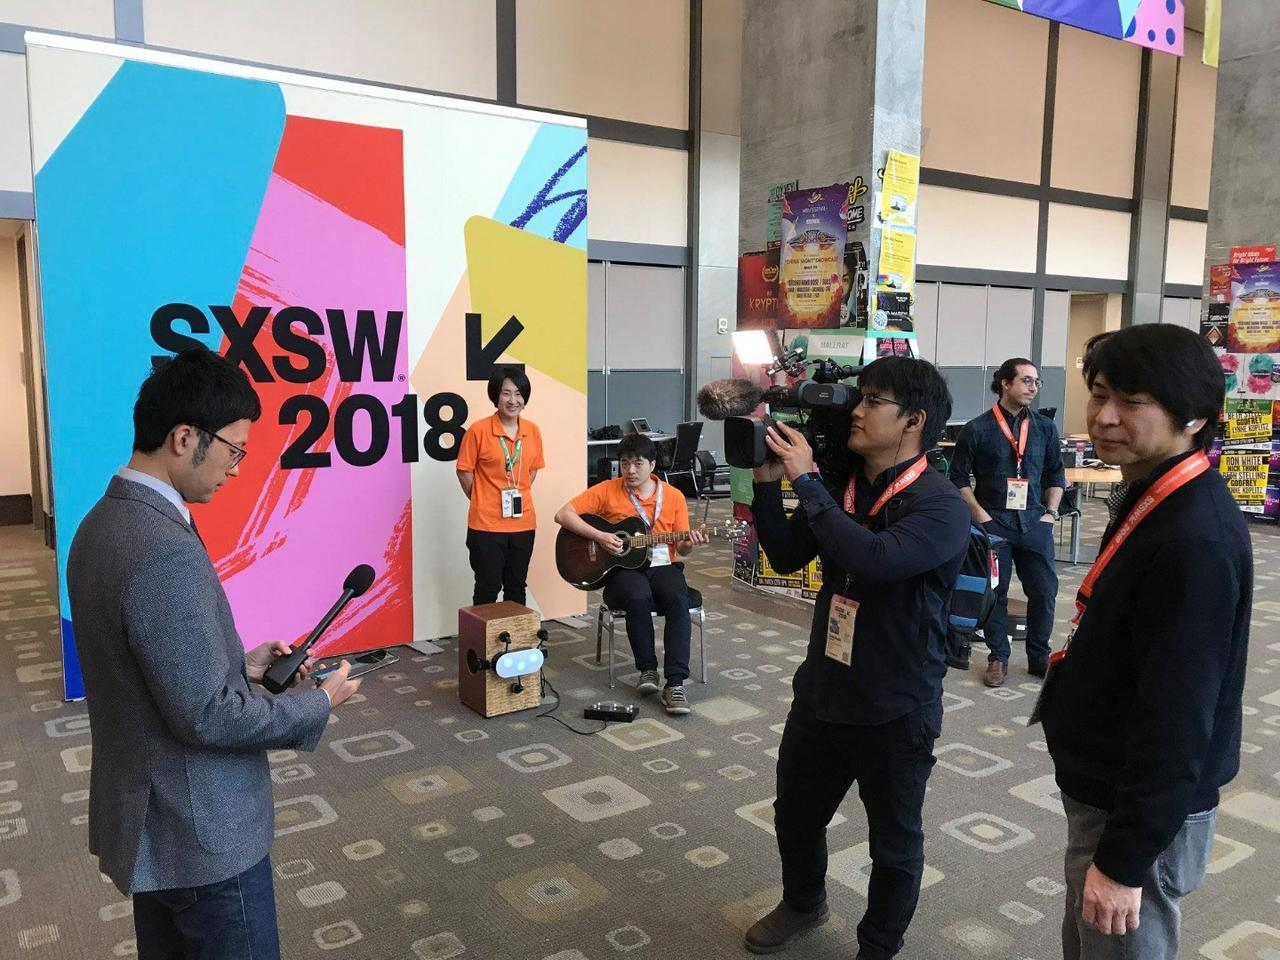 The Cabot robotic Cajon beat maker was recently demonstrated at SXSW in Austin, Texas